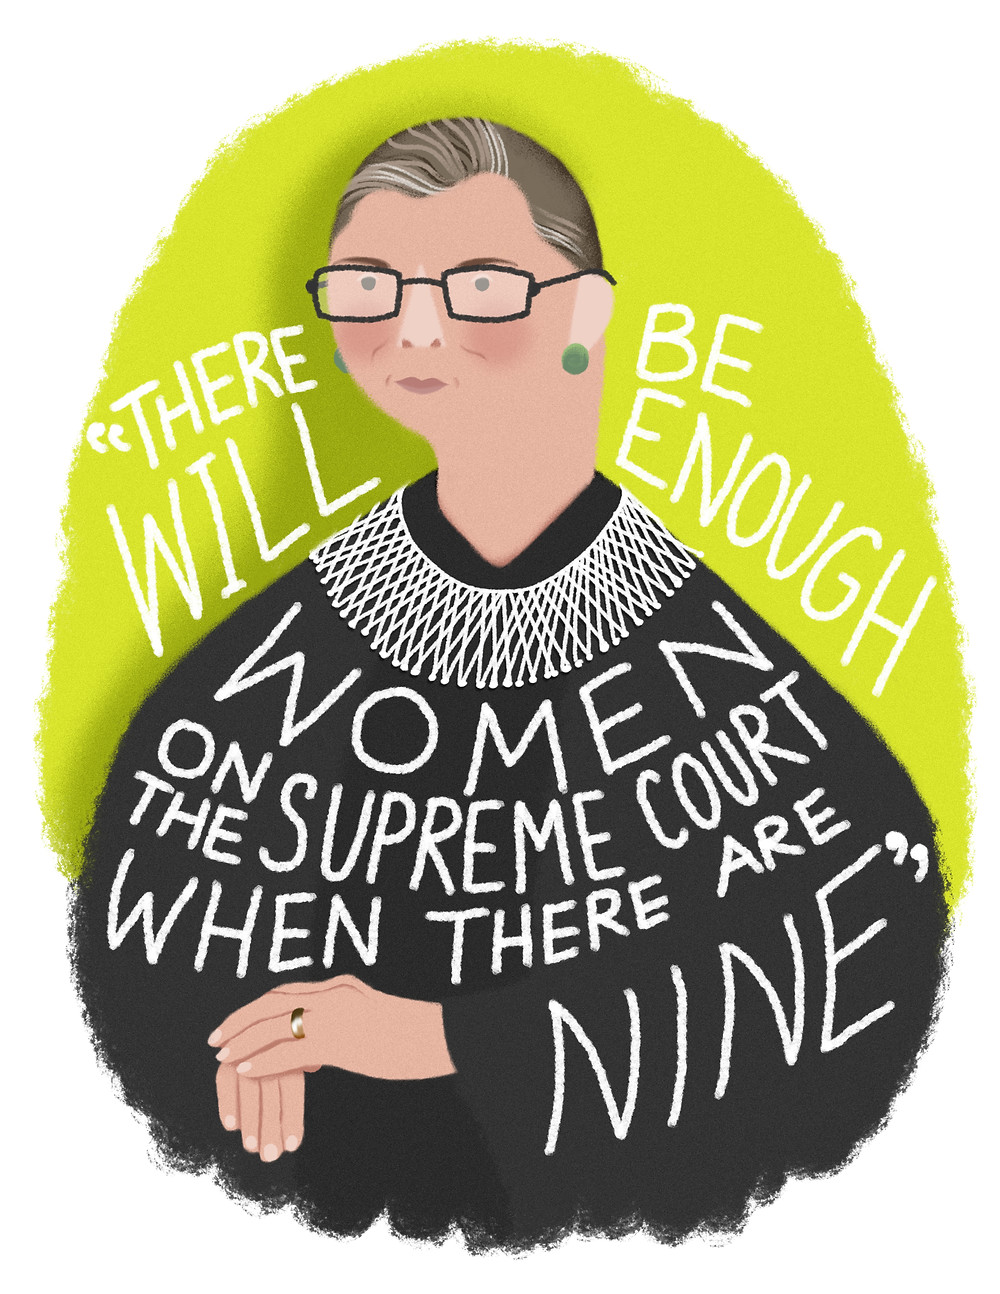 """Portrait of Supreme Court Justice Ruth Bader Ginsburg. She is wearing her black robes with a white beaded collar, rectangular-framed eyeglasses, and jade earrings. Around her the words read, """"There will be enough women on the Supreme Court when there are nine."""""""